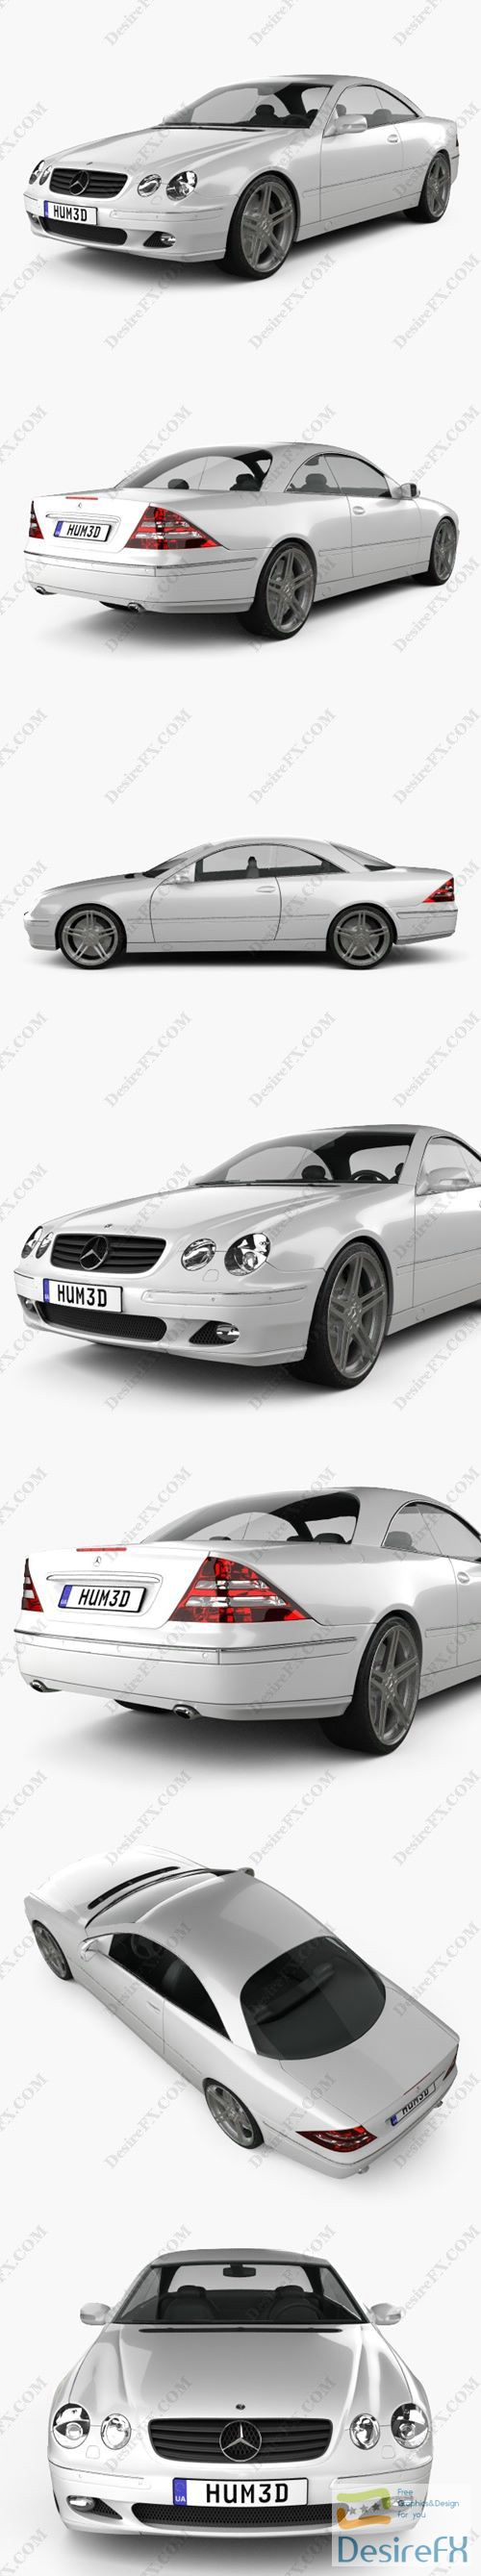 Mercedes-Benz CL-Class 2006 3D Model